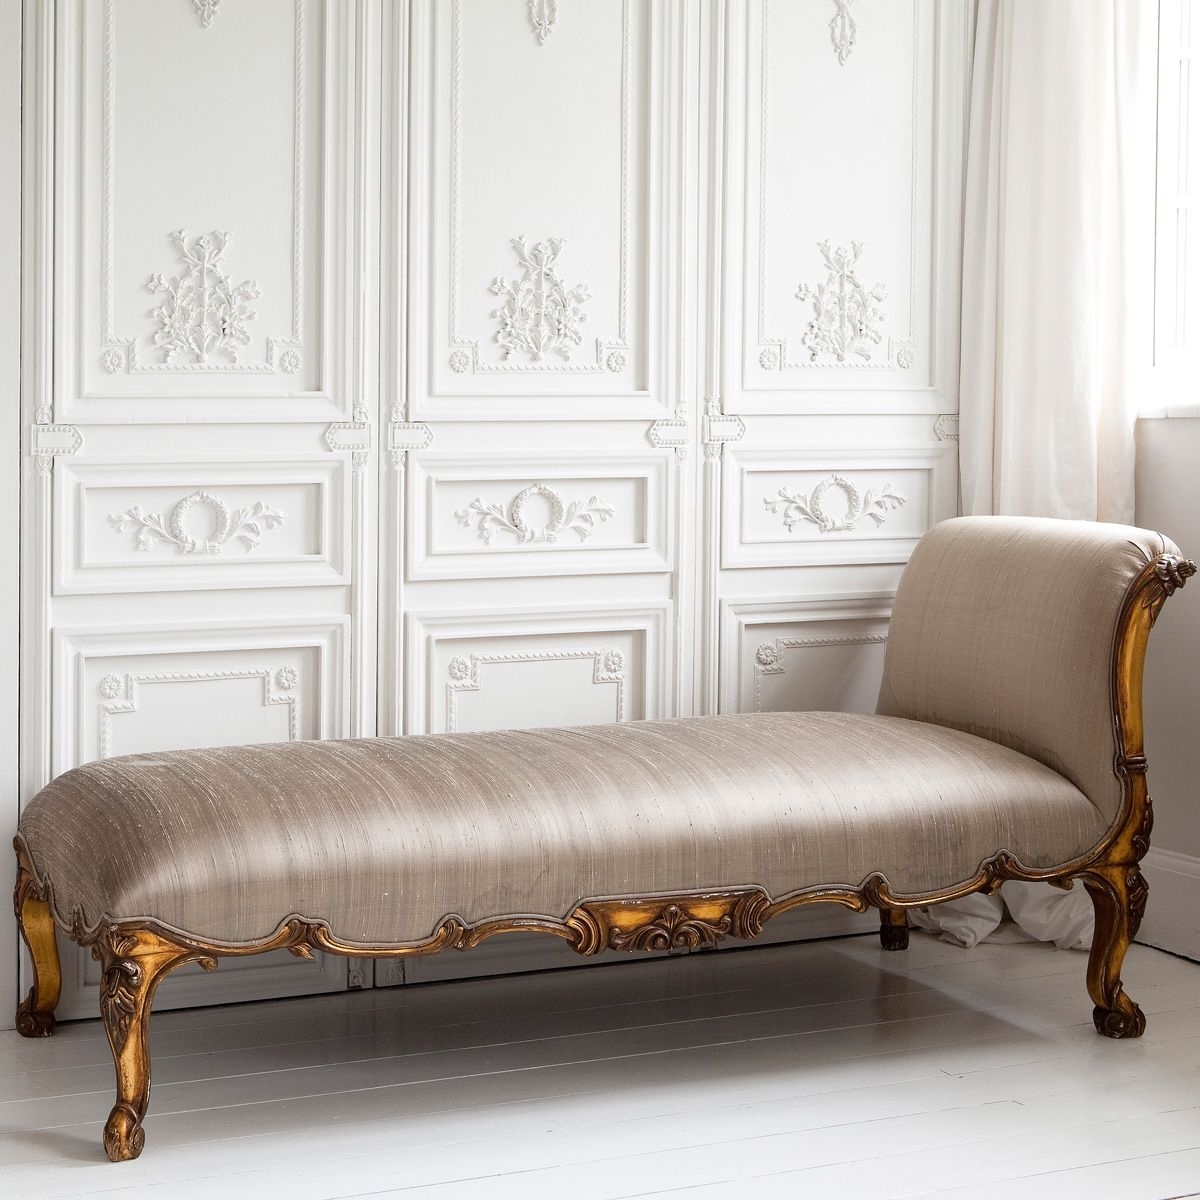 Most Popular Gold Chaise Lounge Chairs Within Versailles Gold Chaise Loungethe French Bedroom Company (View 13 of 15)